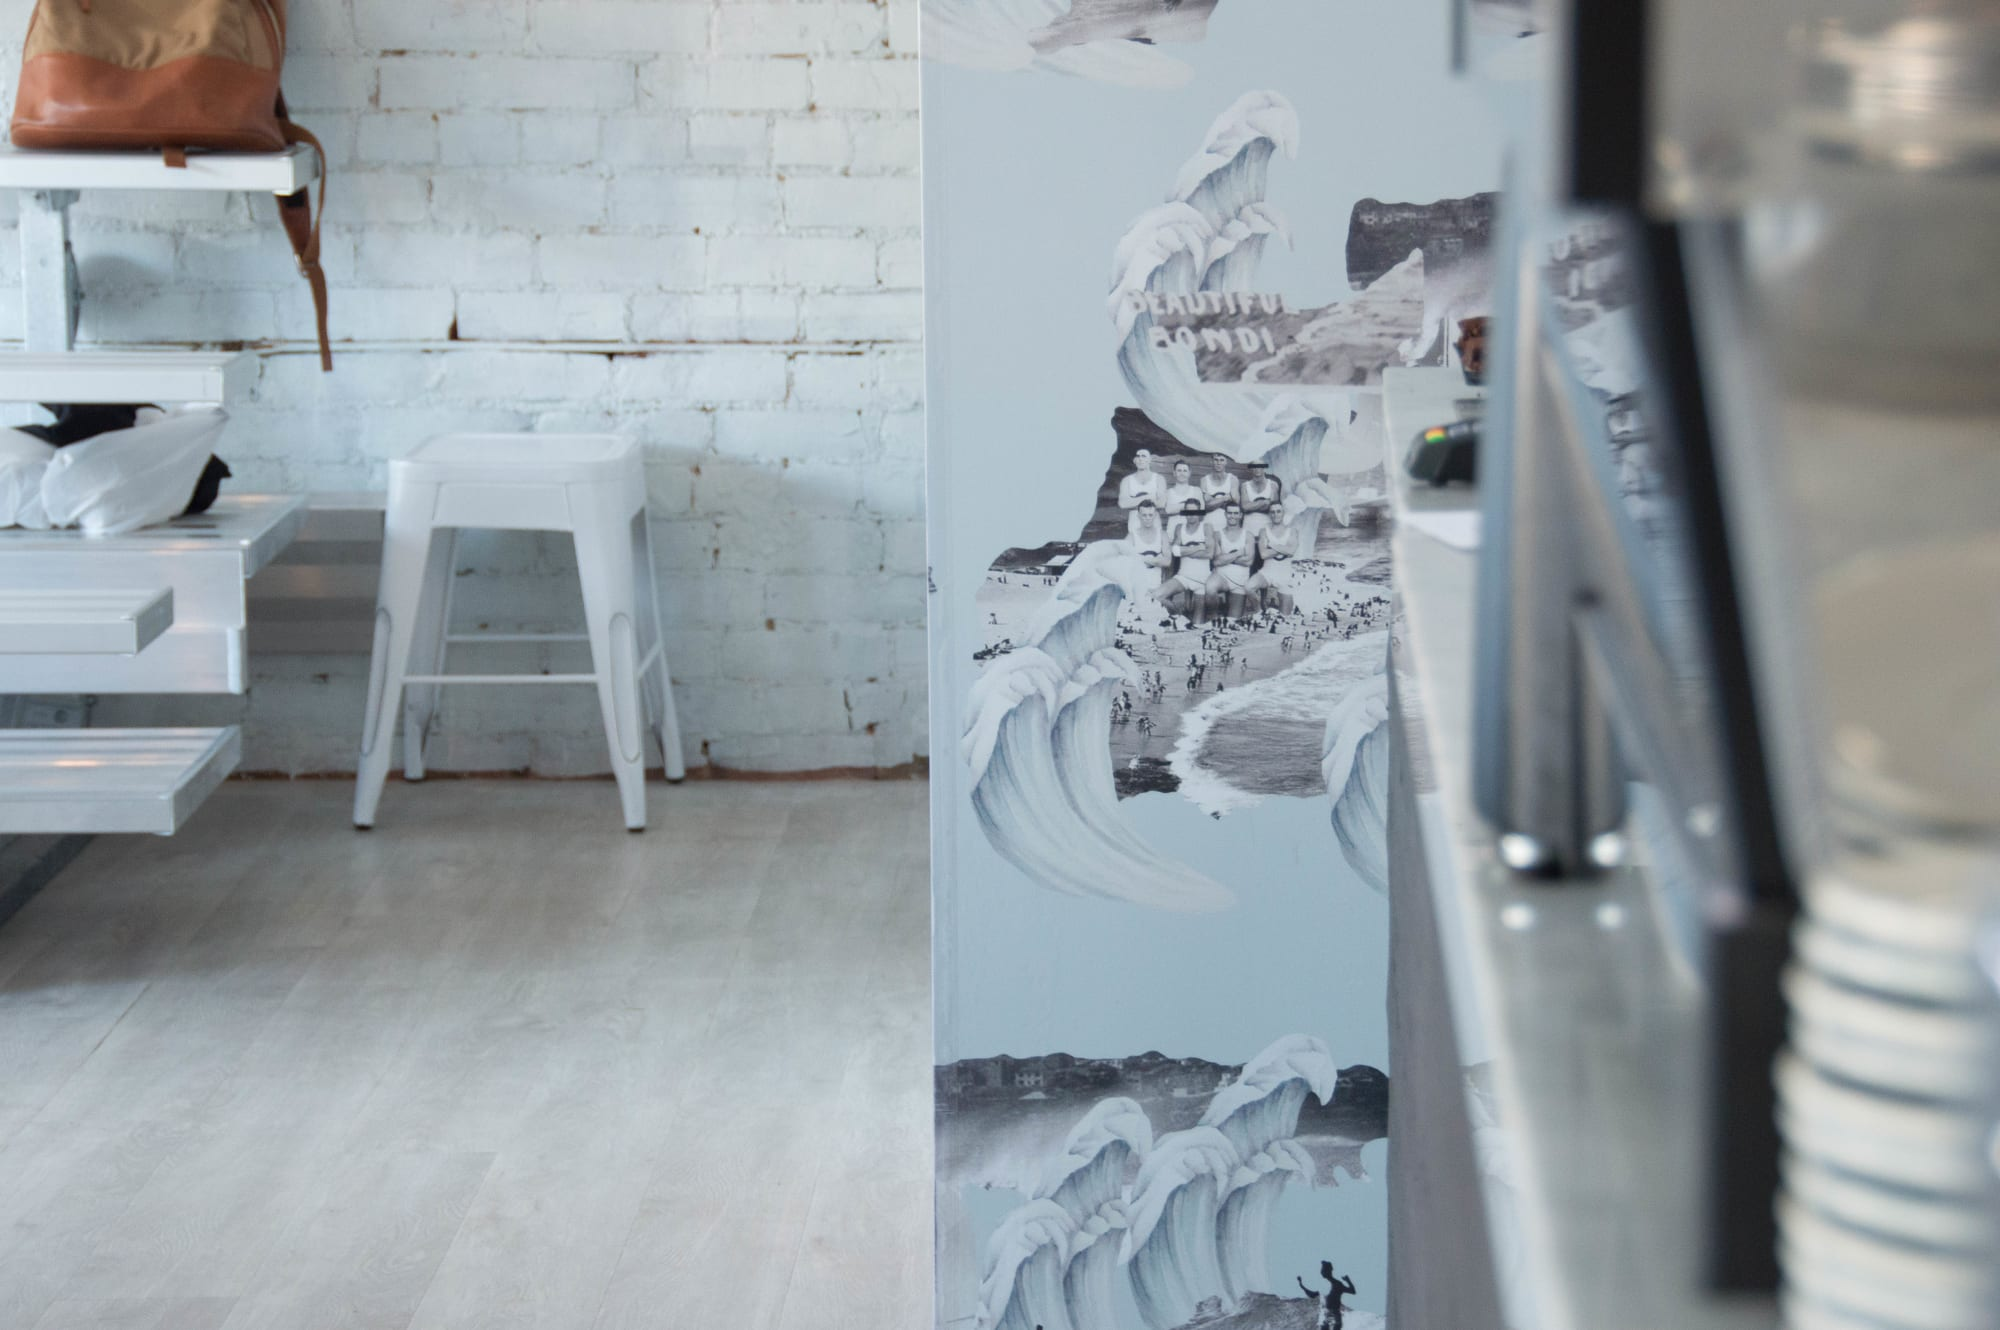 Wallpaper by Candice Kaye Design at Baddies, Toronto - Custom Wallpaper